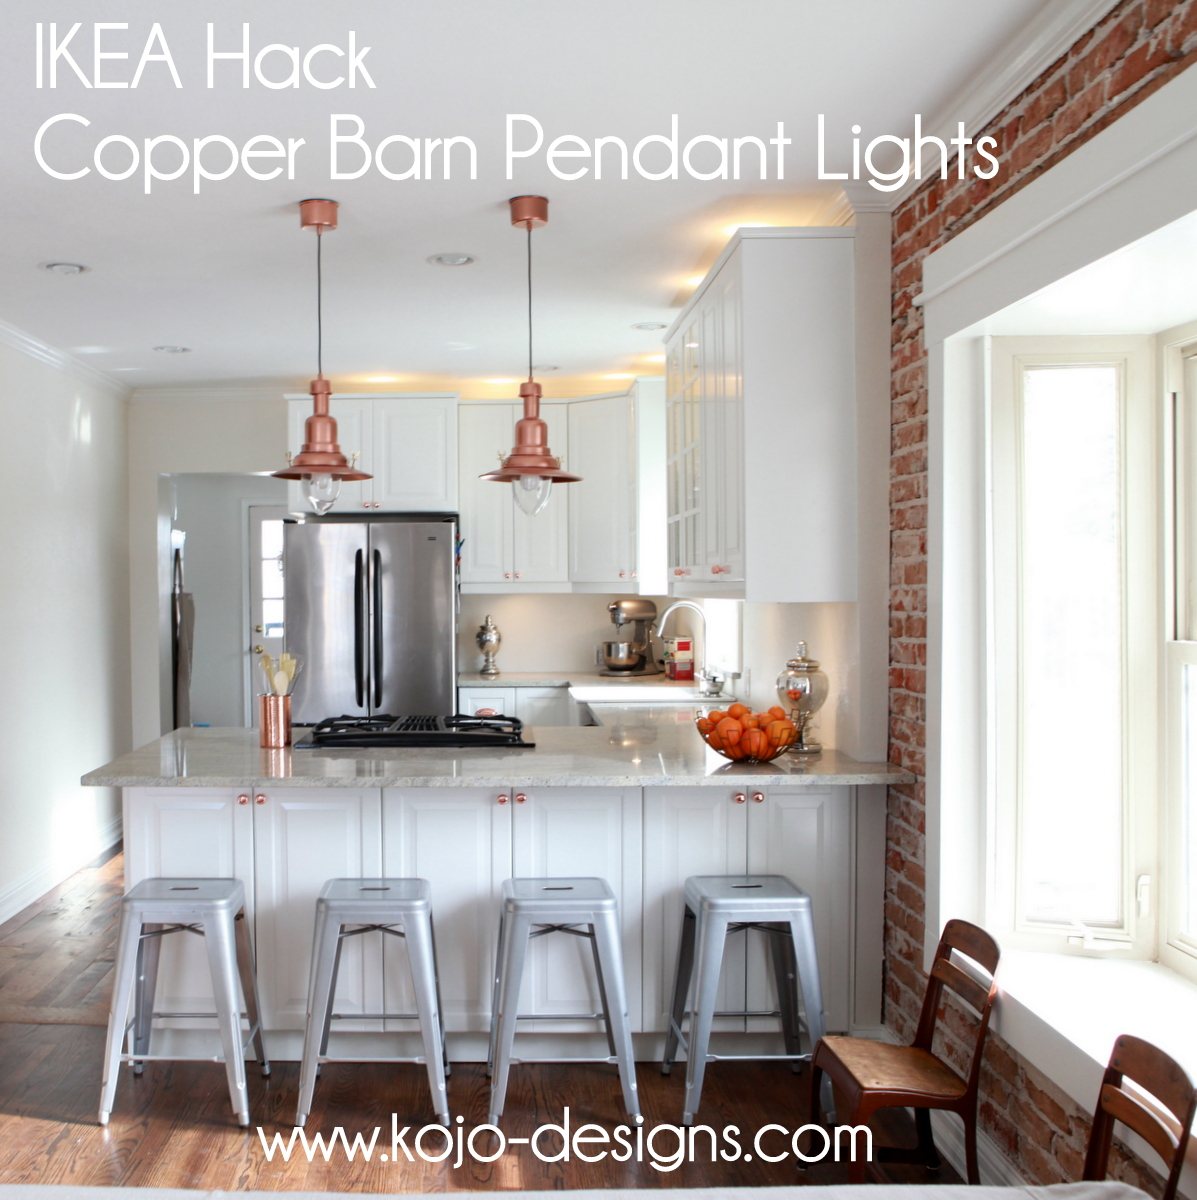 Copper barn light ikea hack ikea hack how to turn an ottava light into a copper barn pendant light aloadofball Images